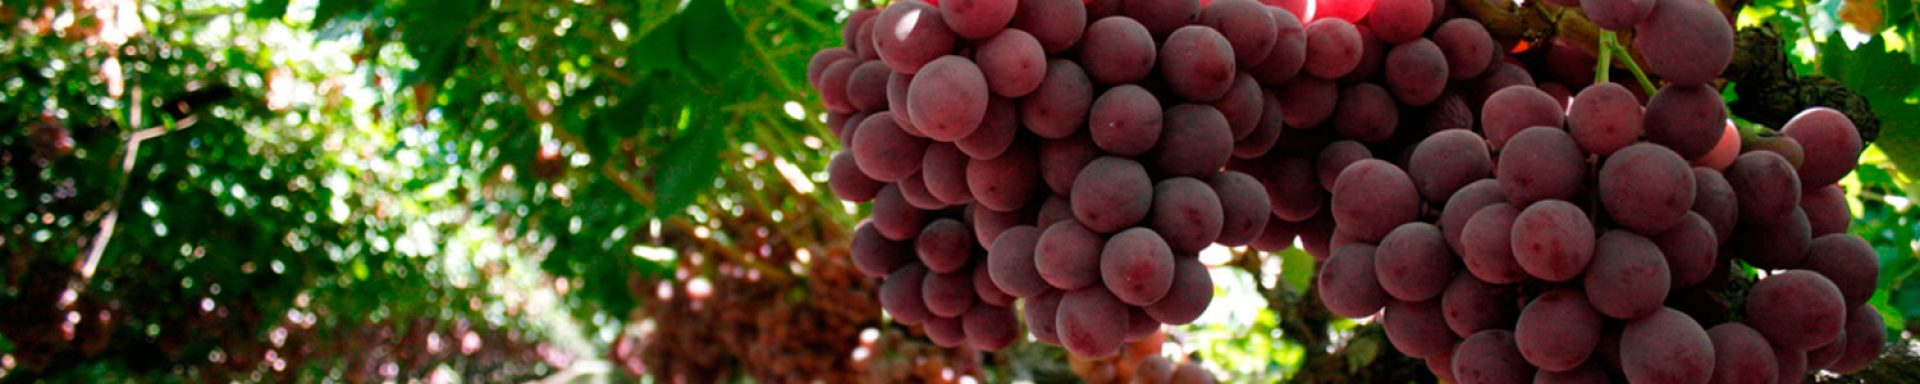 Our climatic conditions grant us the possibility to focus our harvest according to the requirements of the market